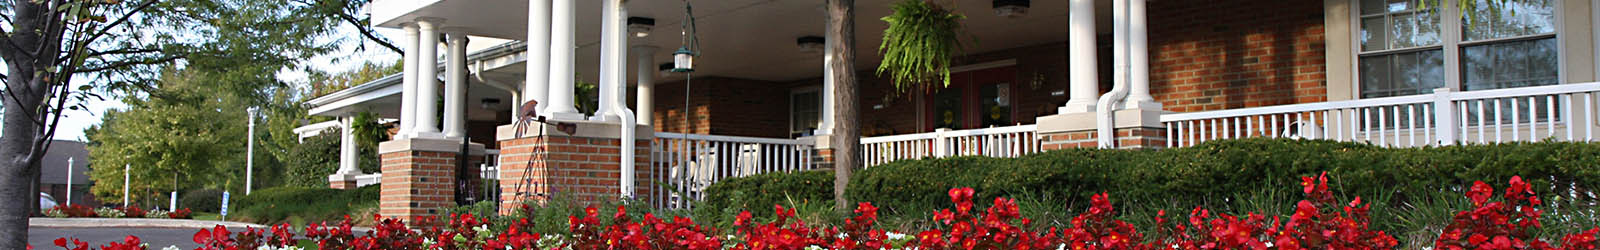 About senior living in Hilliard, OH